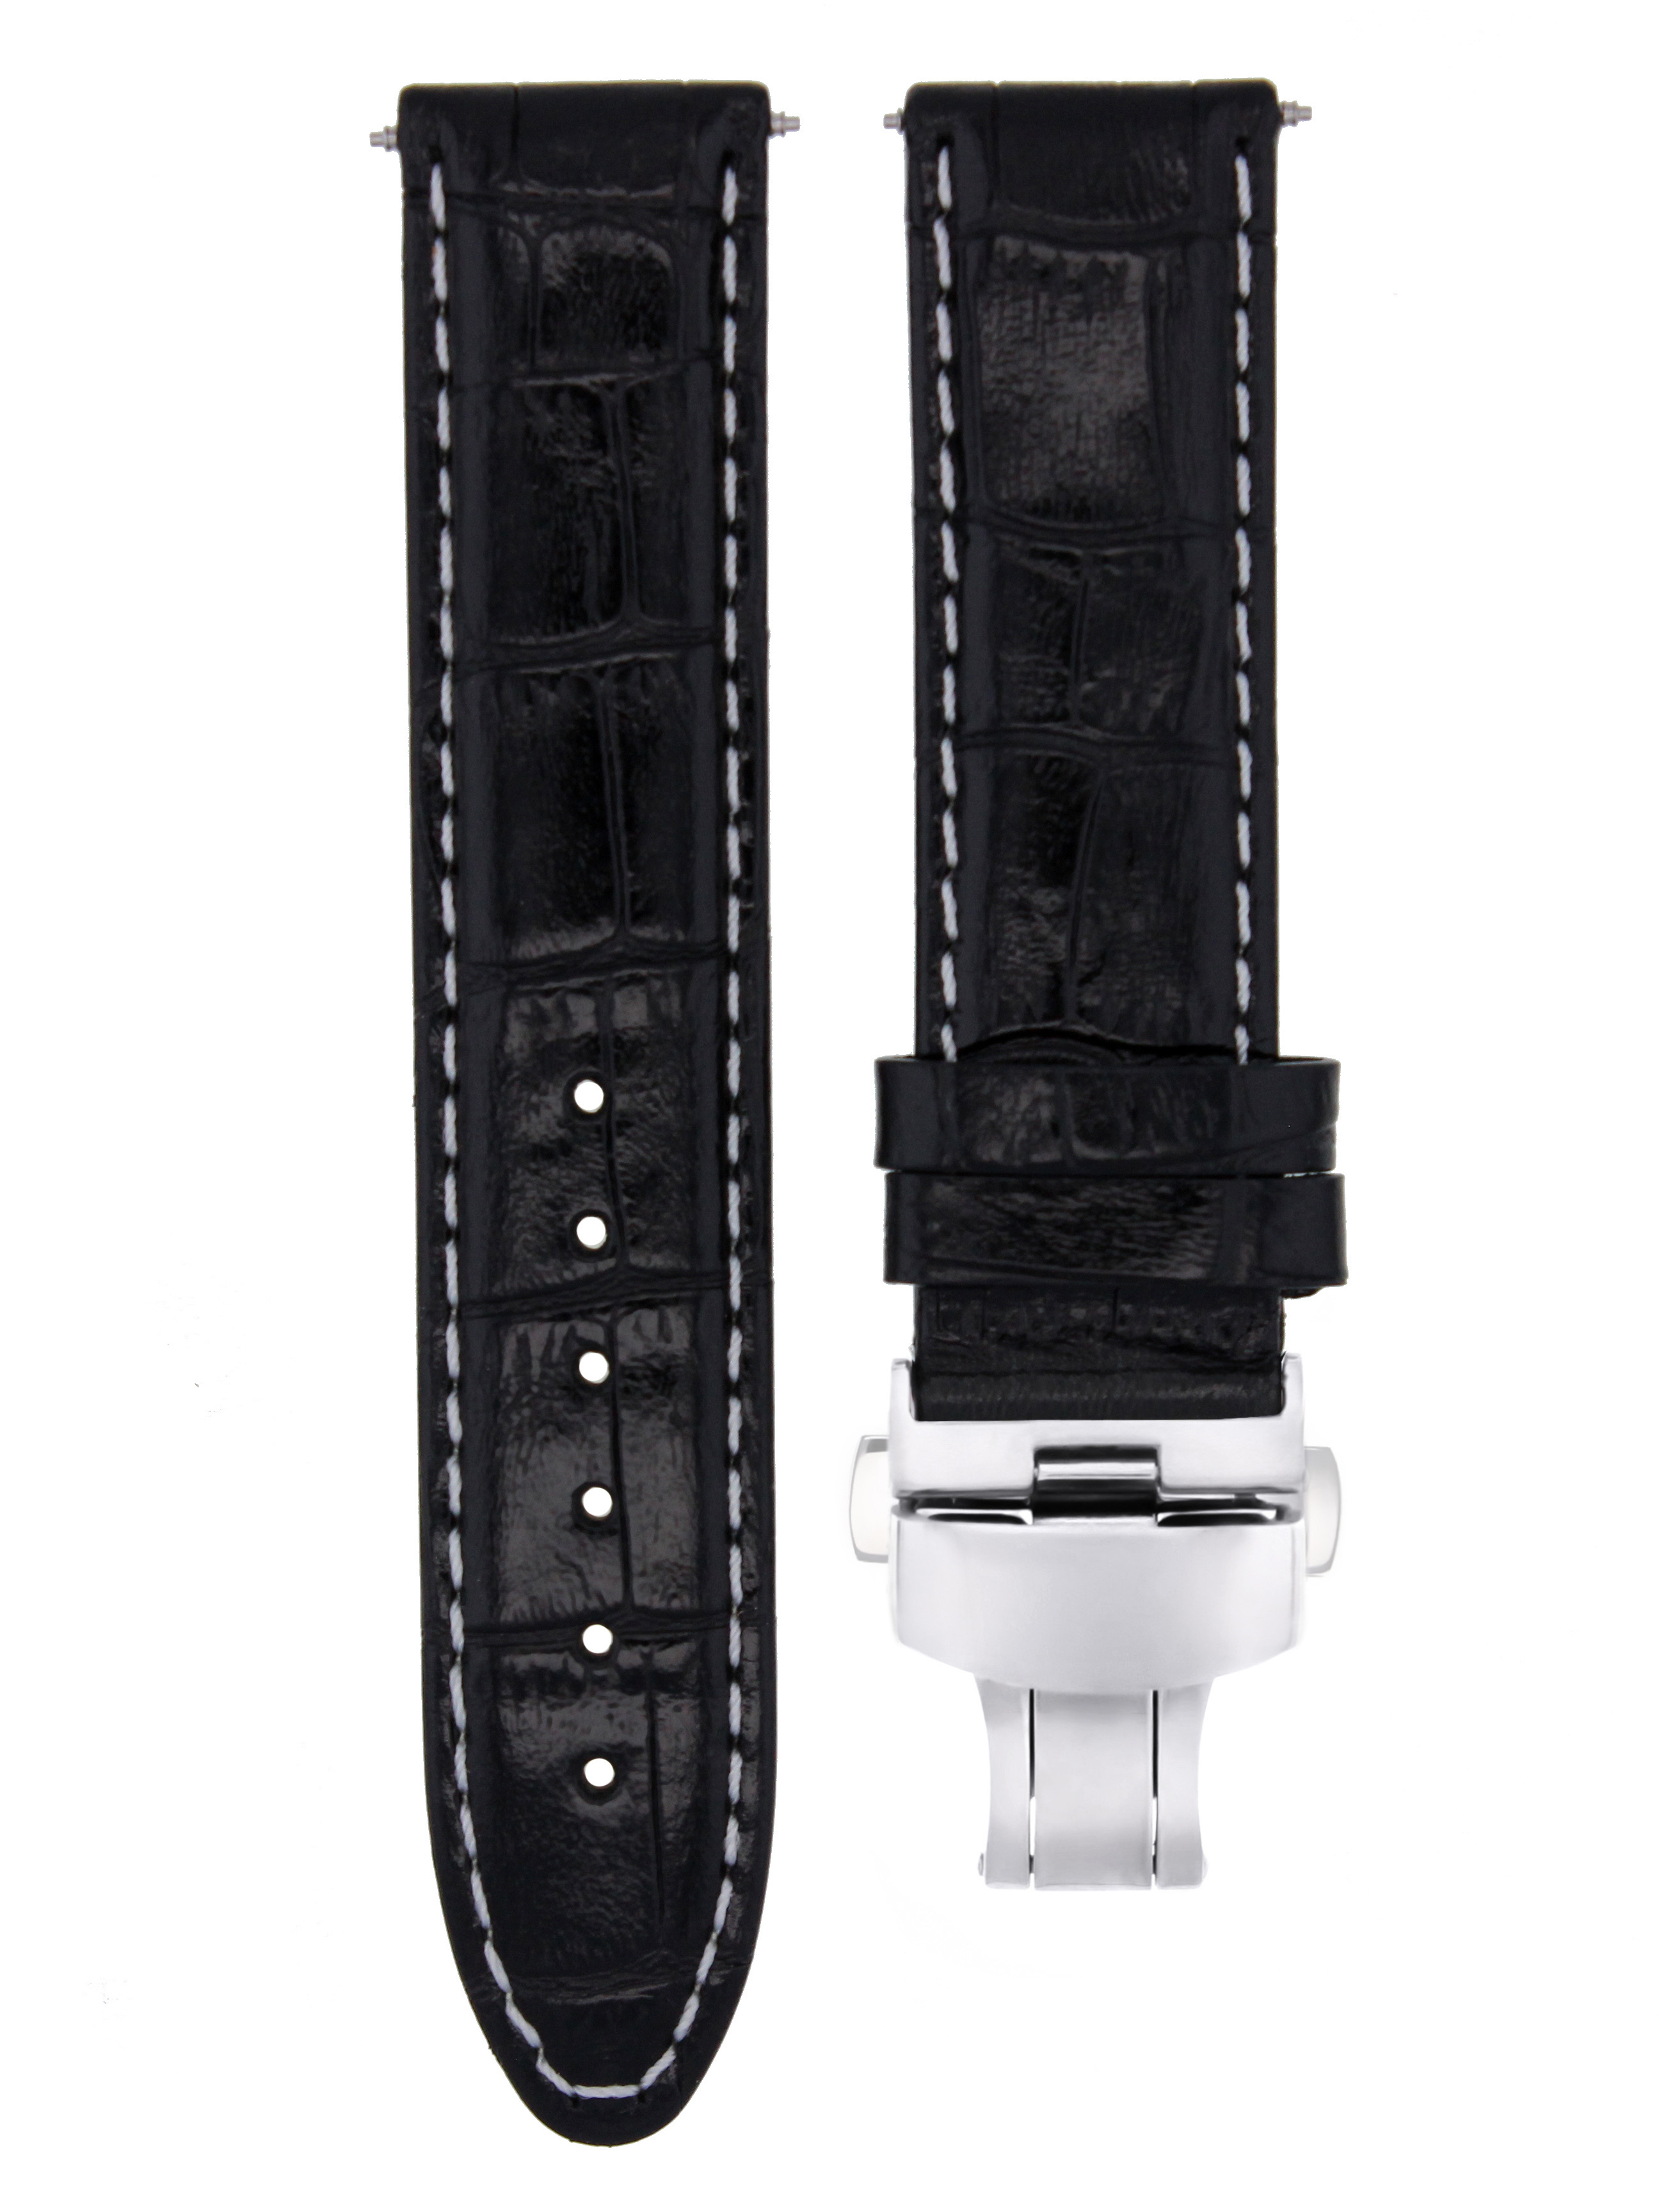 18MM LEATHER WATCH STRAP BAND FOR ROLEX WATCH BUTERFLY CLASP BLACK WHITE STITCH